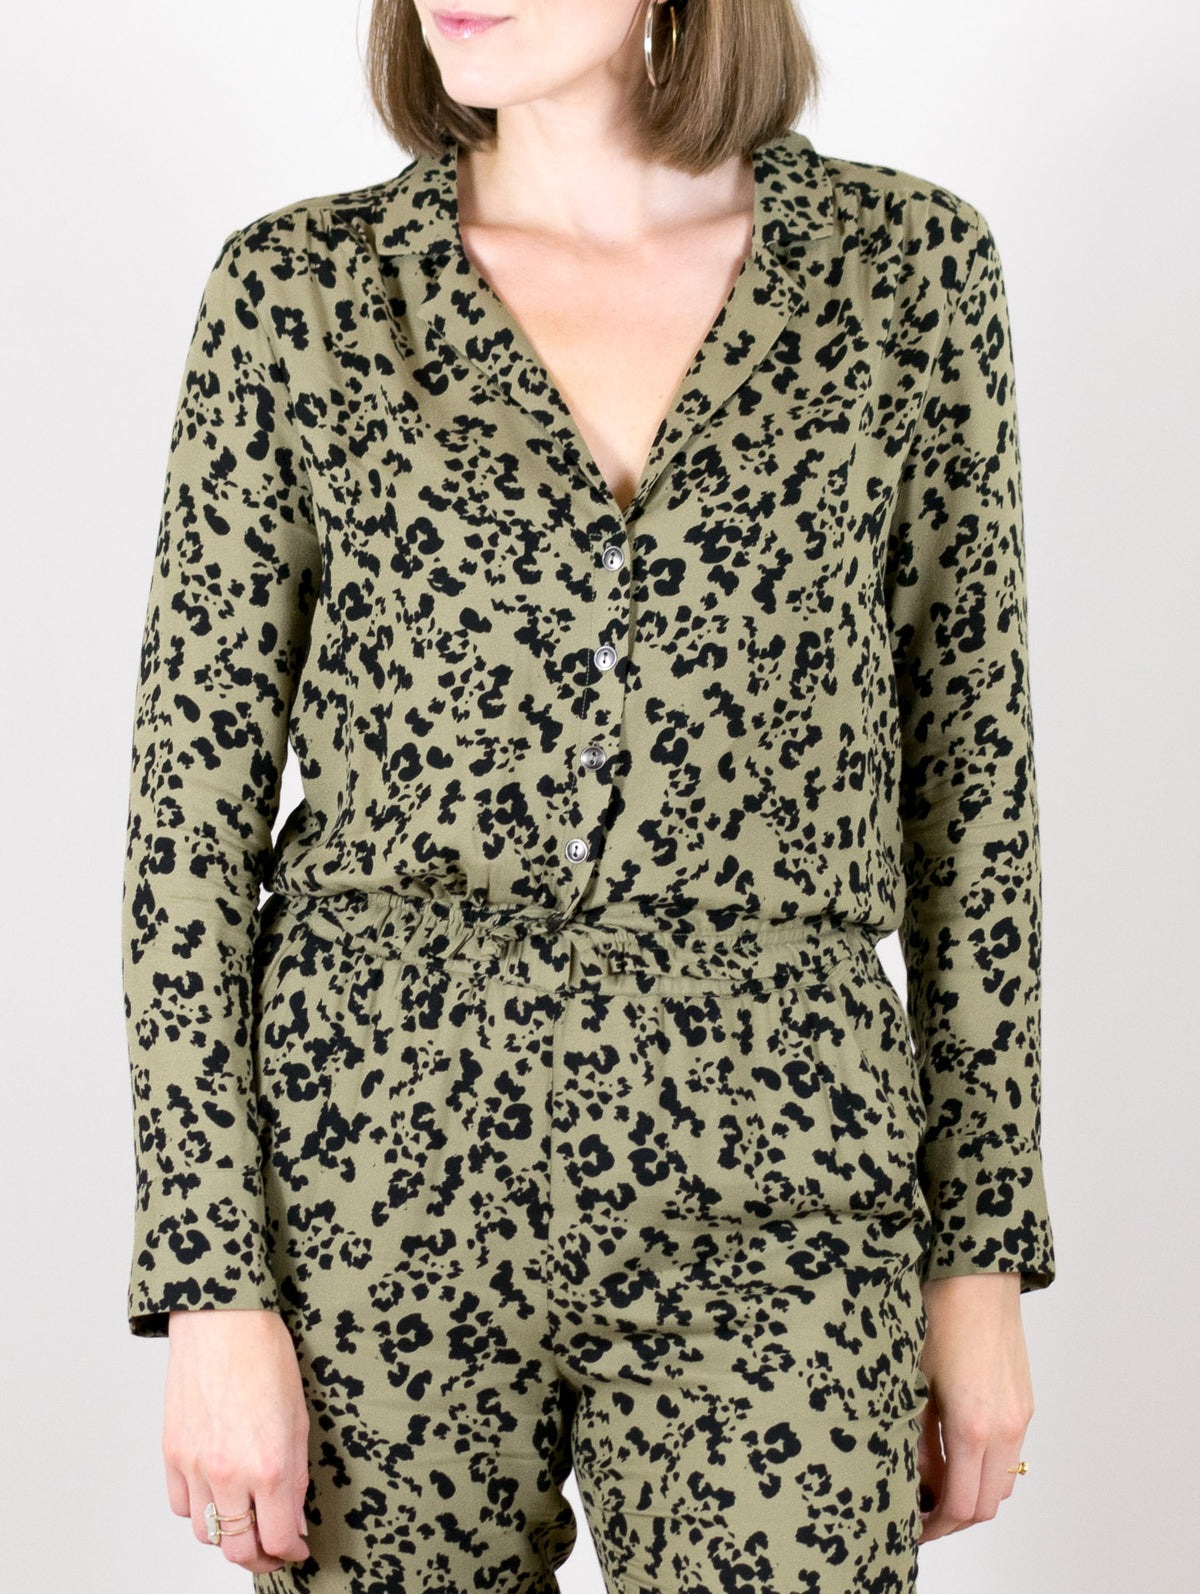 Leopard Collared Button Front Blouse